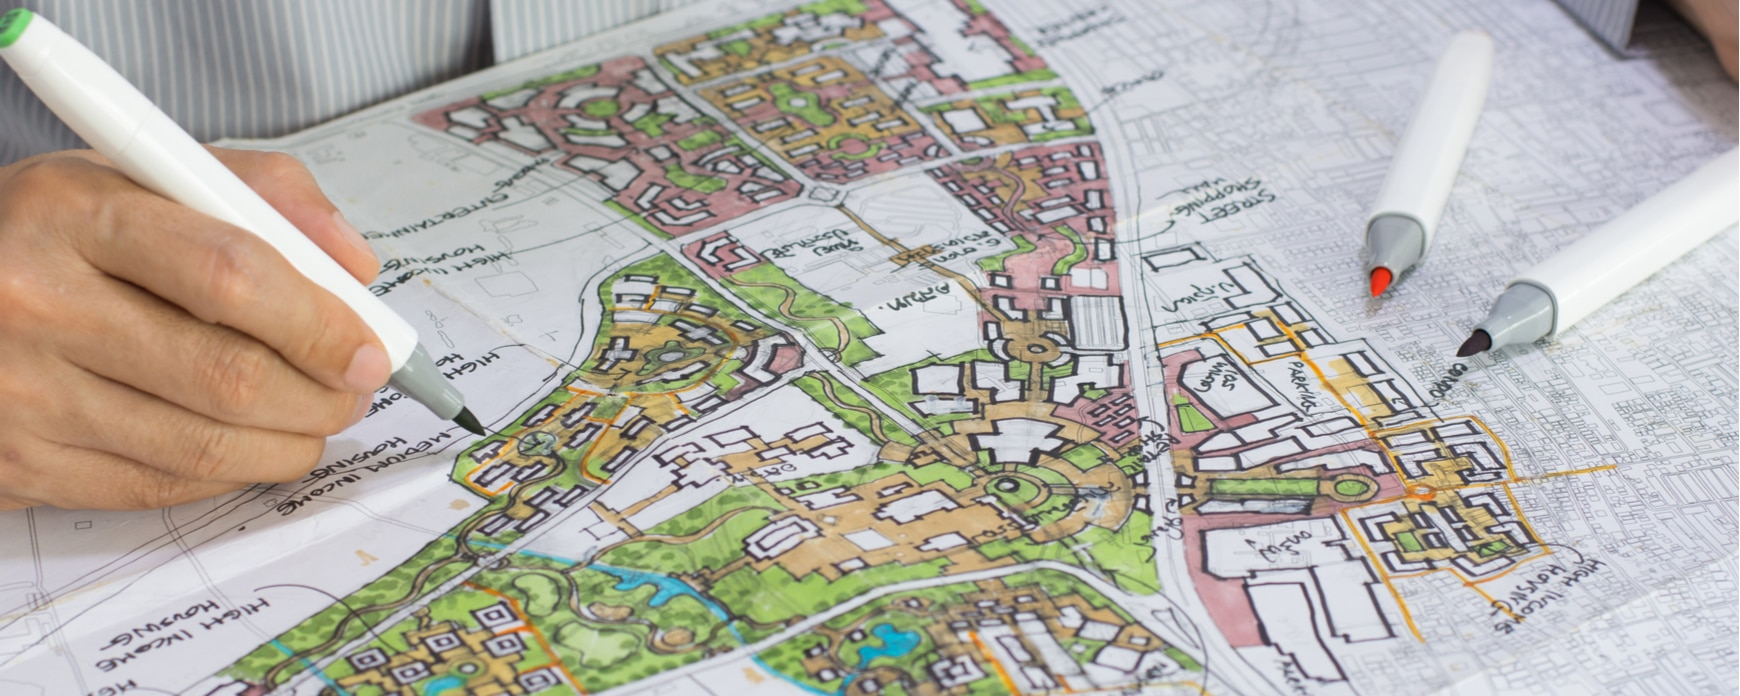 Planning and Zoning Drawing